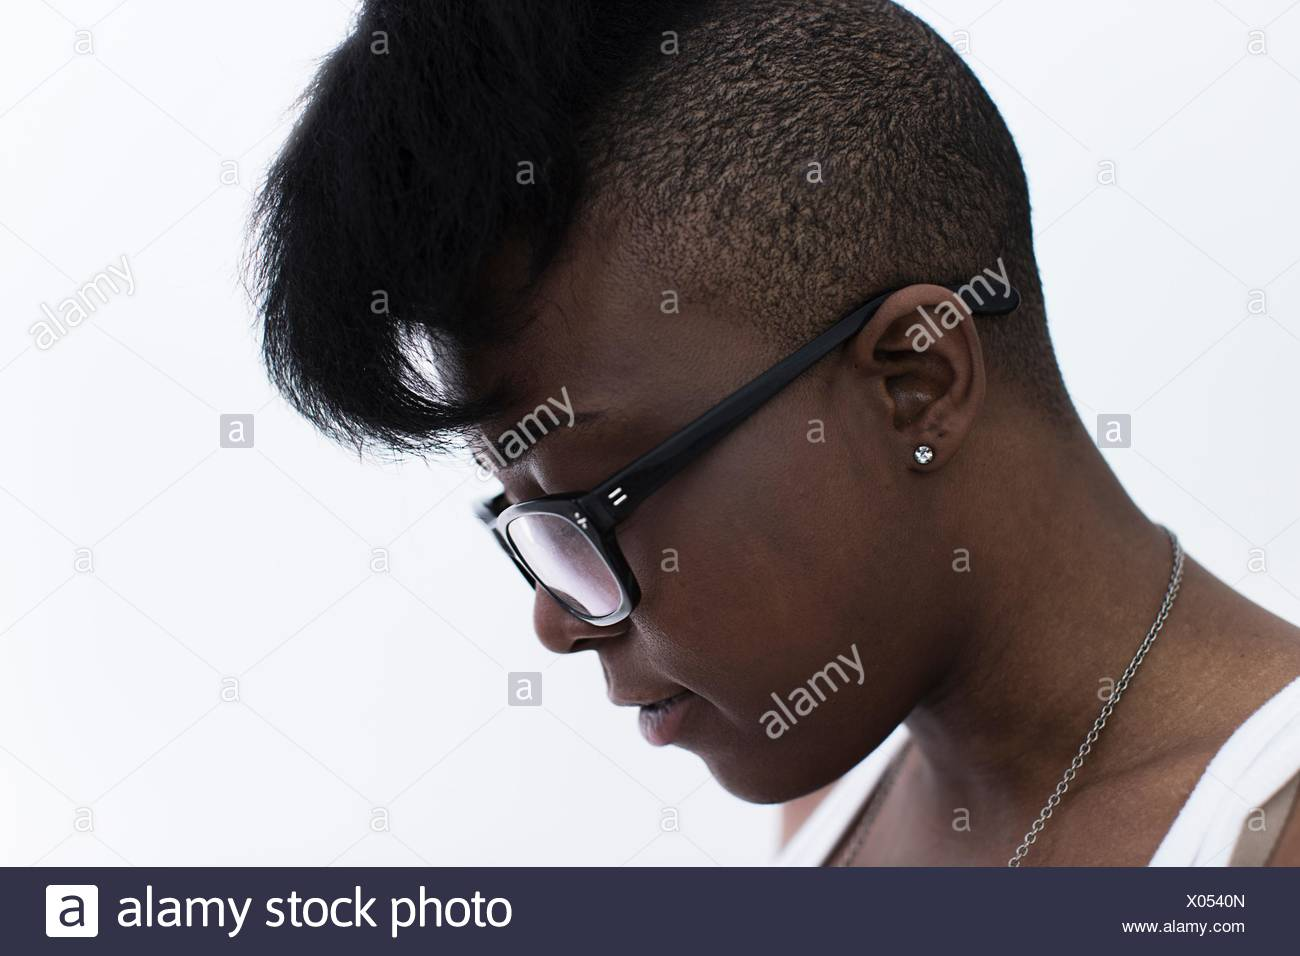 Studio profile portrait of young woman with shaved head and quiff - Stock Image